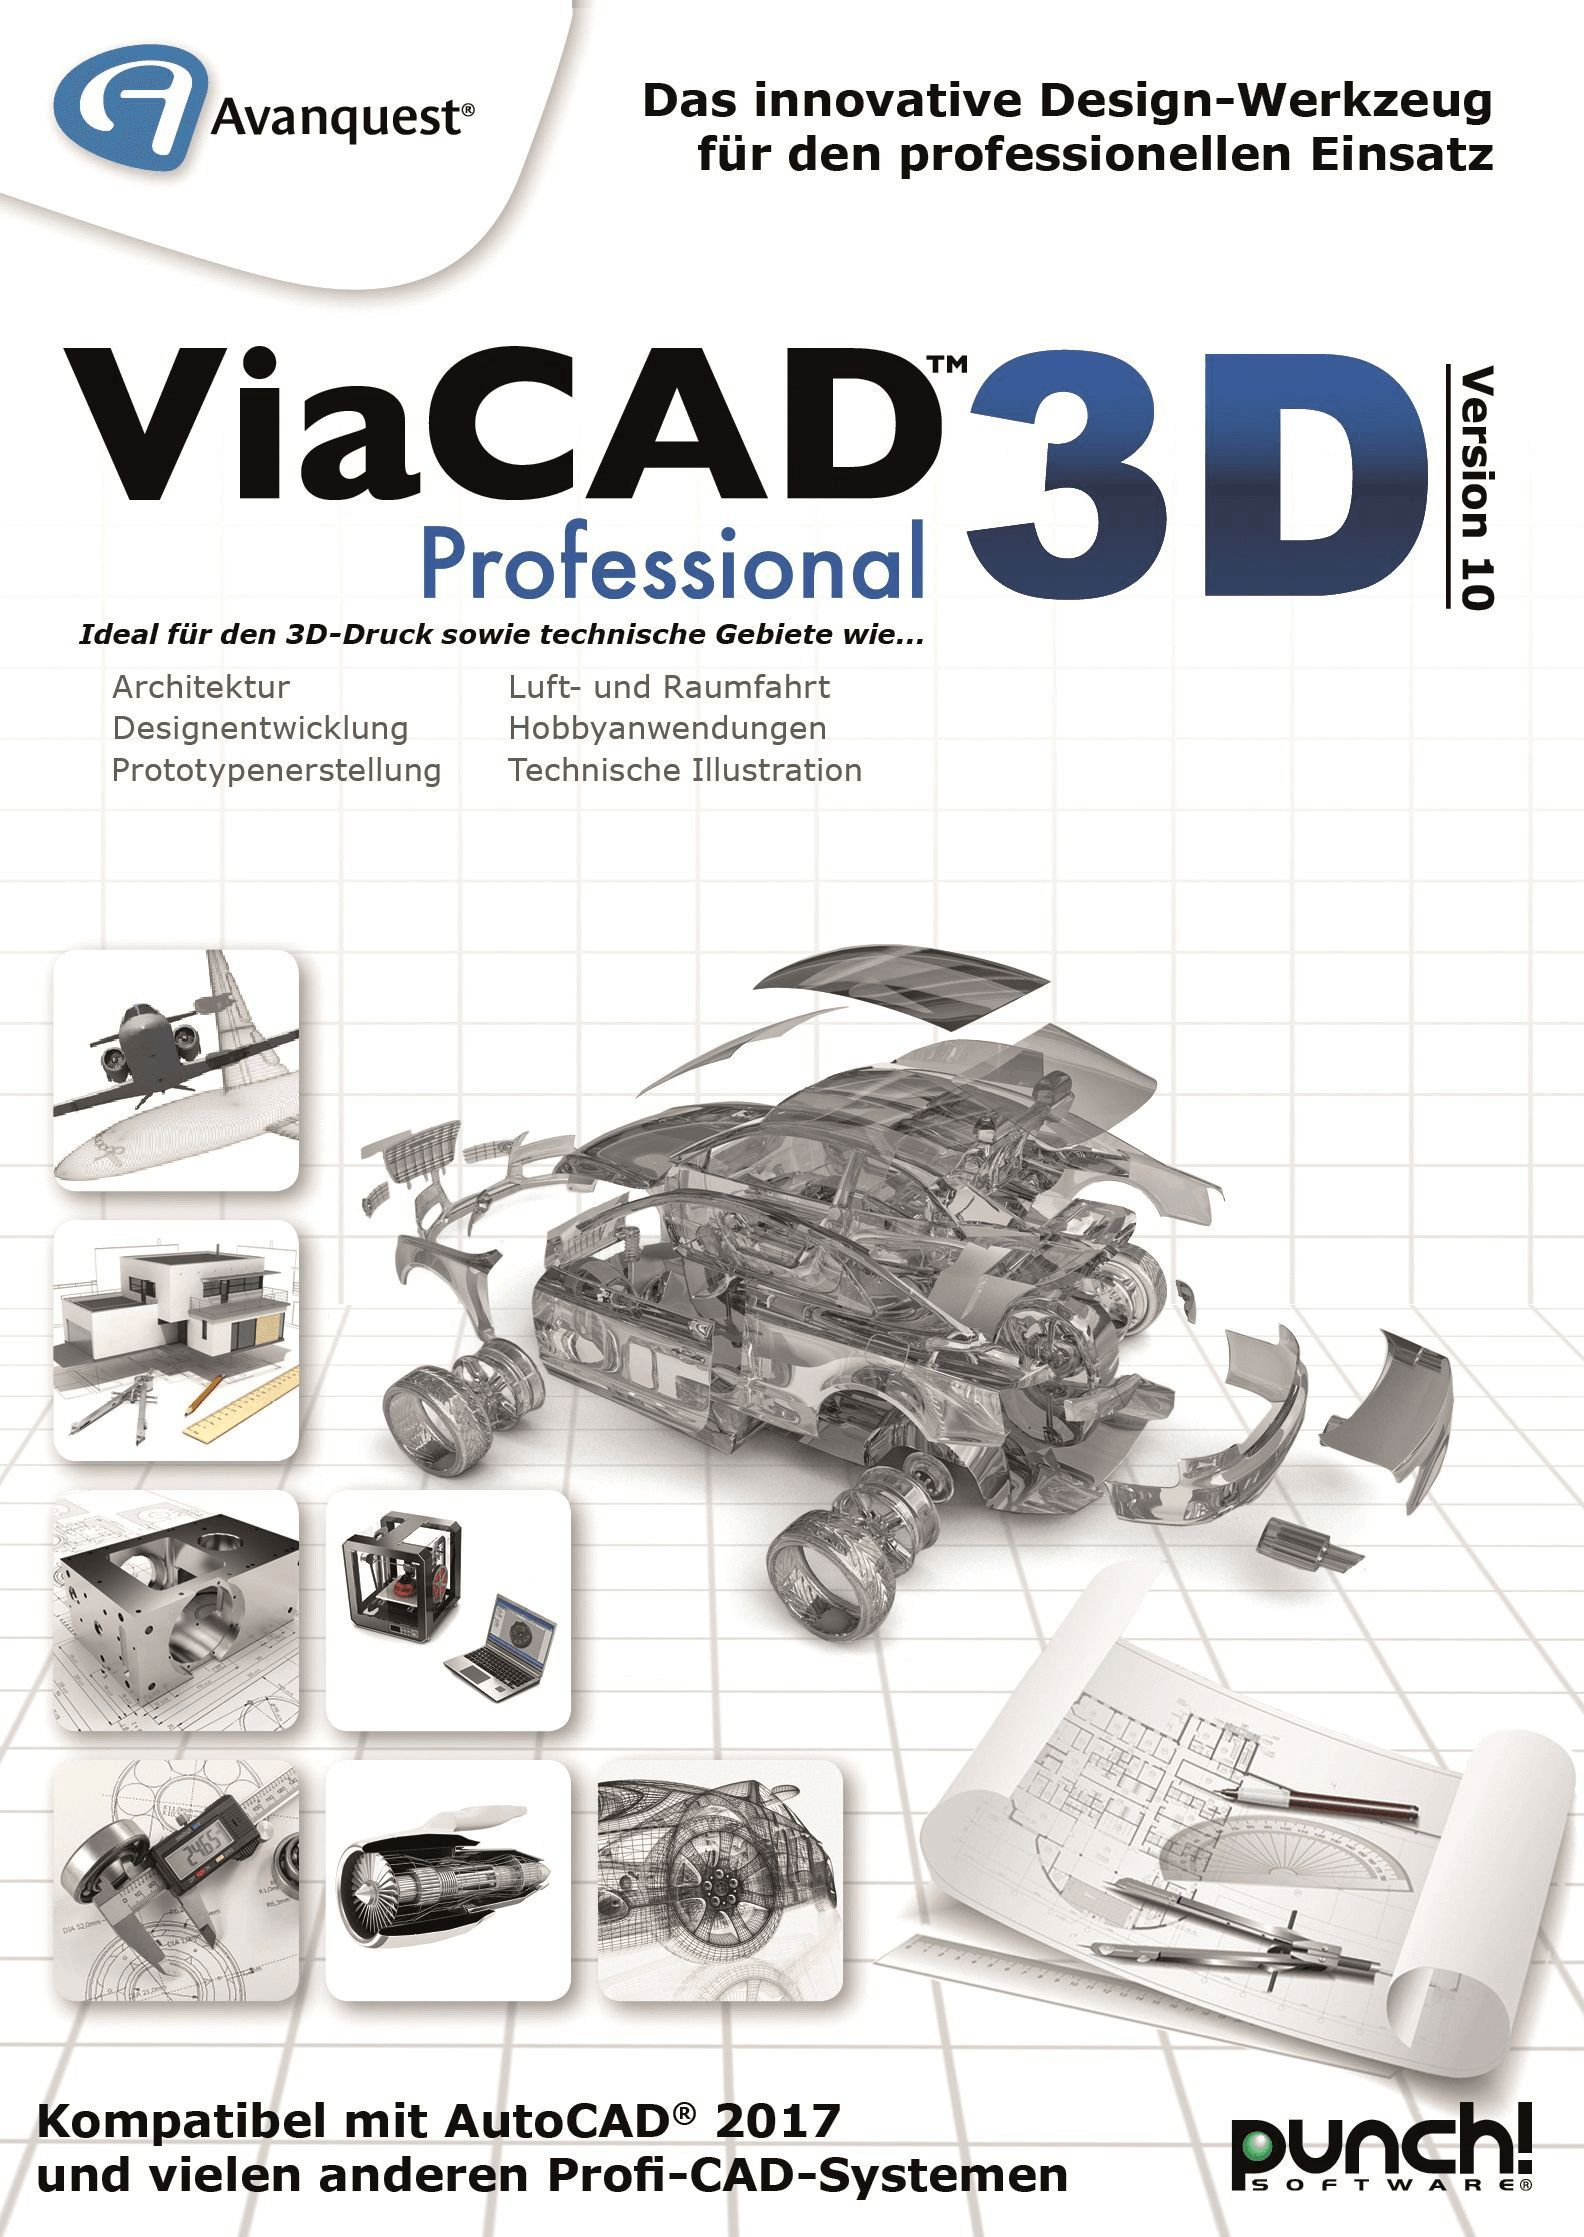 ViaCAD 3D Professional 10 - Fortgeschrittenes CAD-Design: 3D Modellierung, Prototyping und fotorealistische Renderings! Windows 10, 8, 7, Vista - Mac OS 10.12, 10.11, 10.10, 10.9, 10.8 (64-bit) [Download]